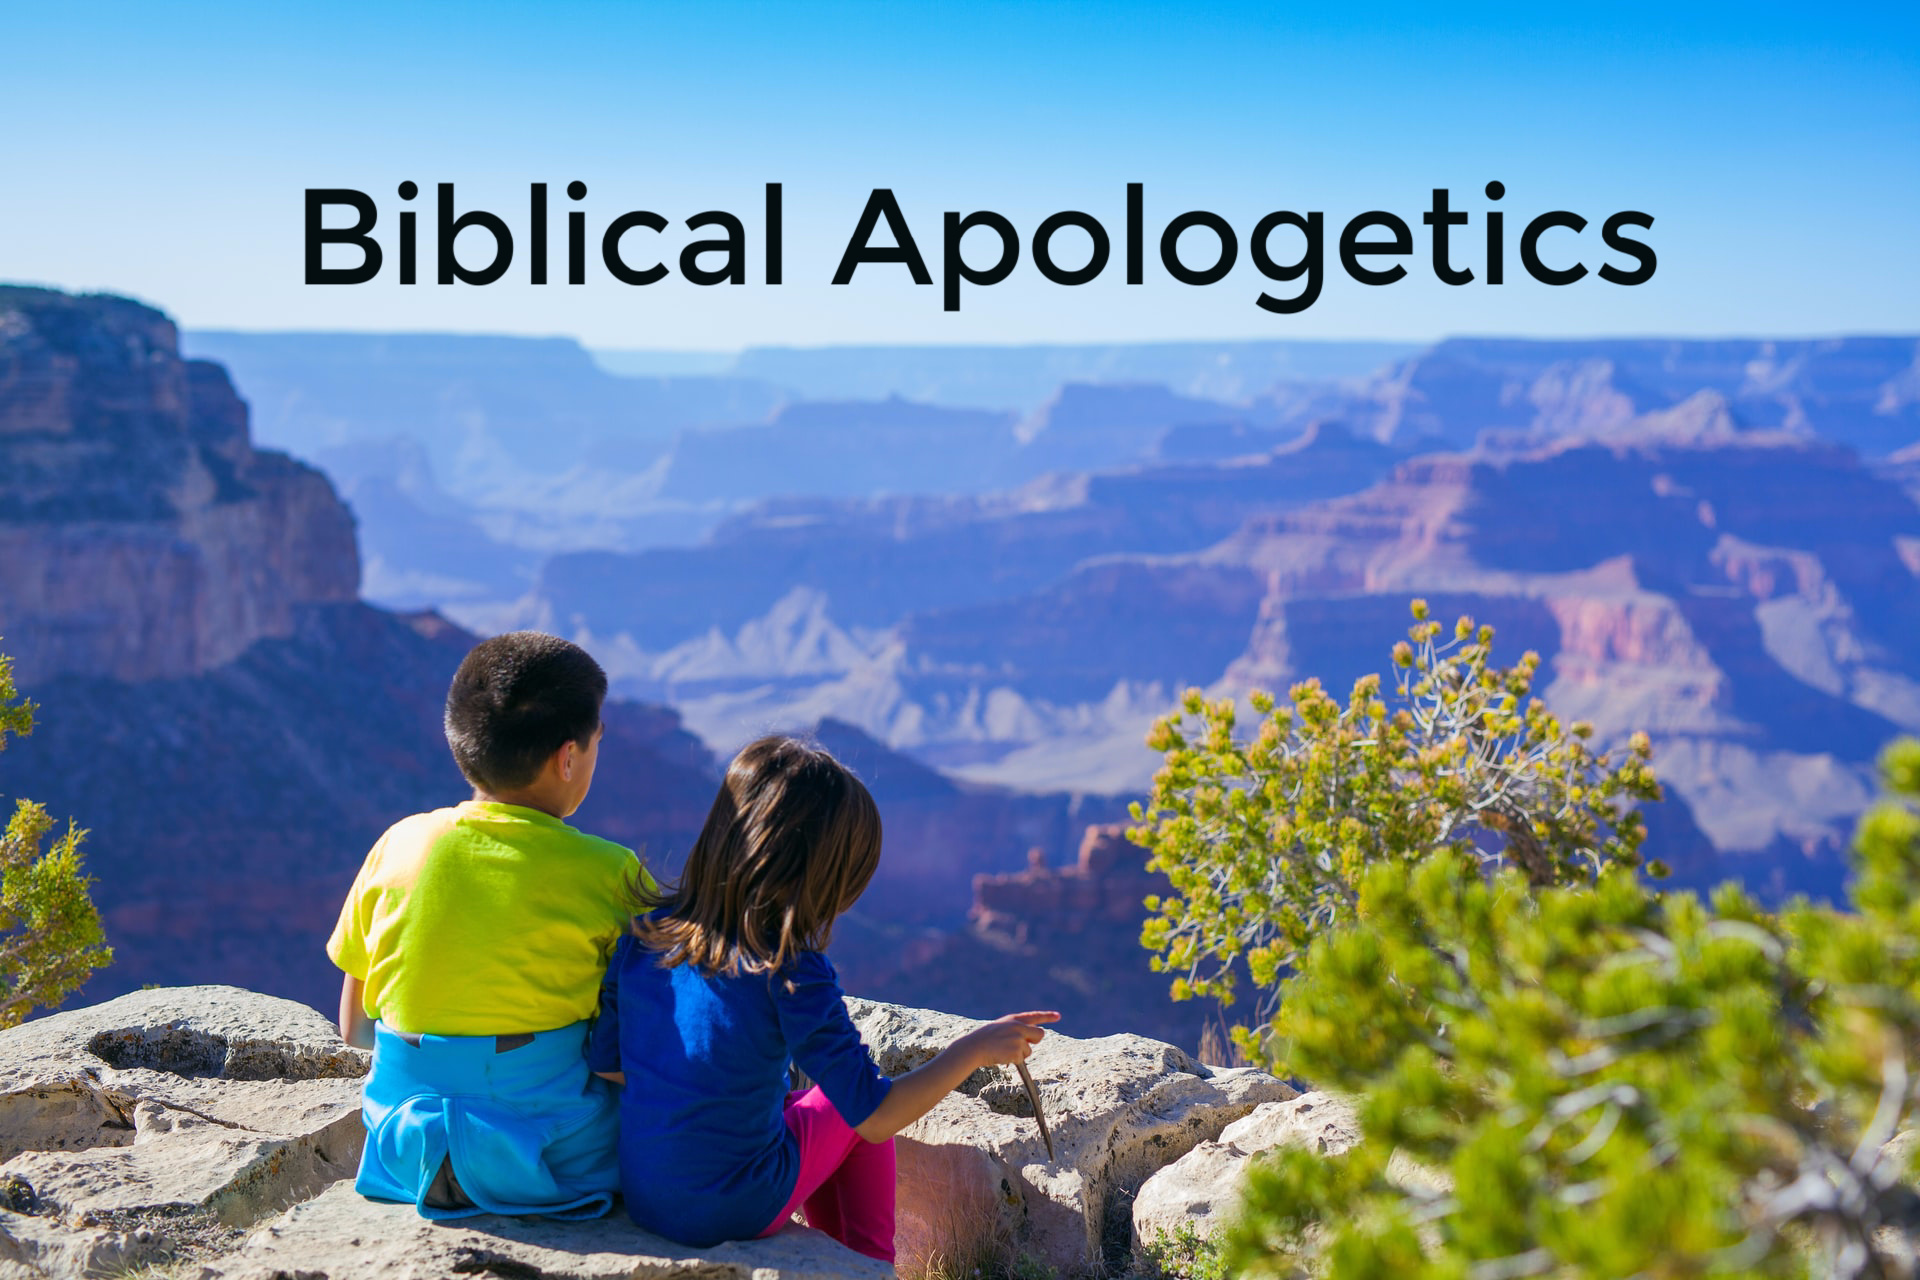 Biblical Apologetics, boy and girl sitting on rim of canyon